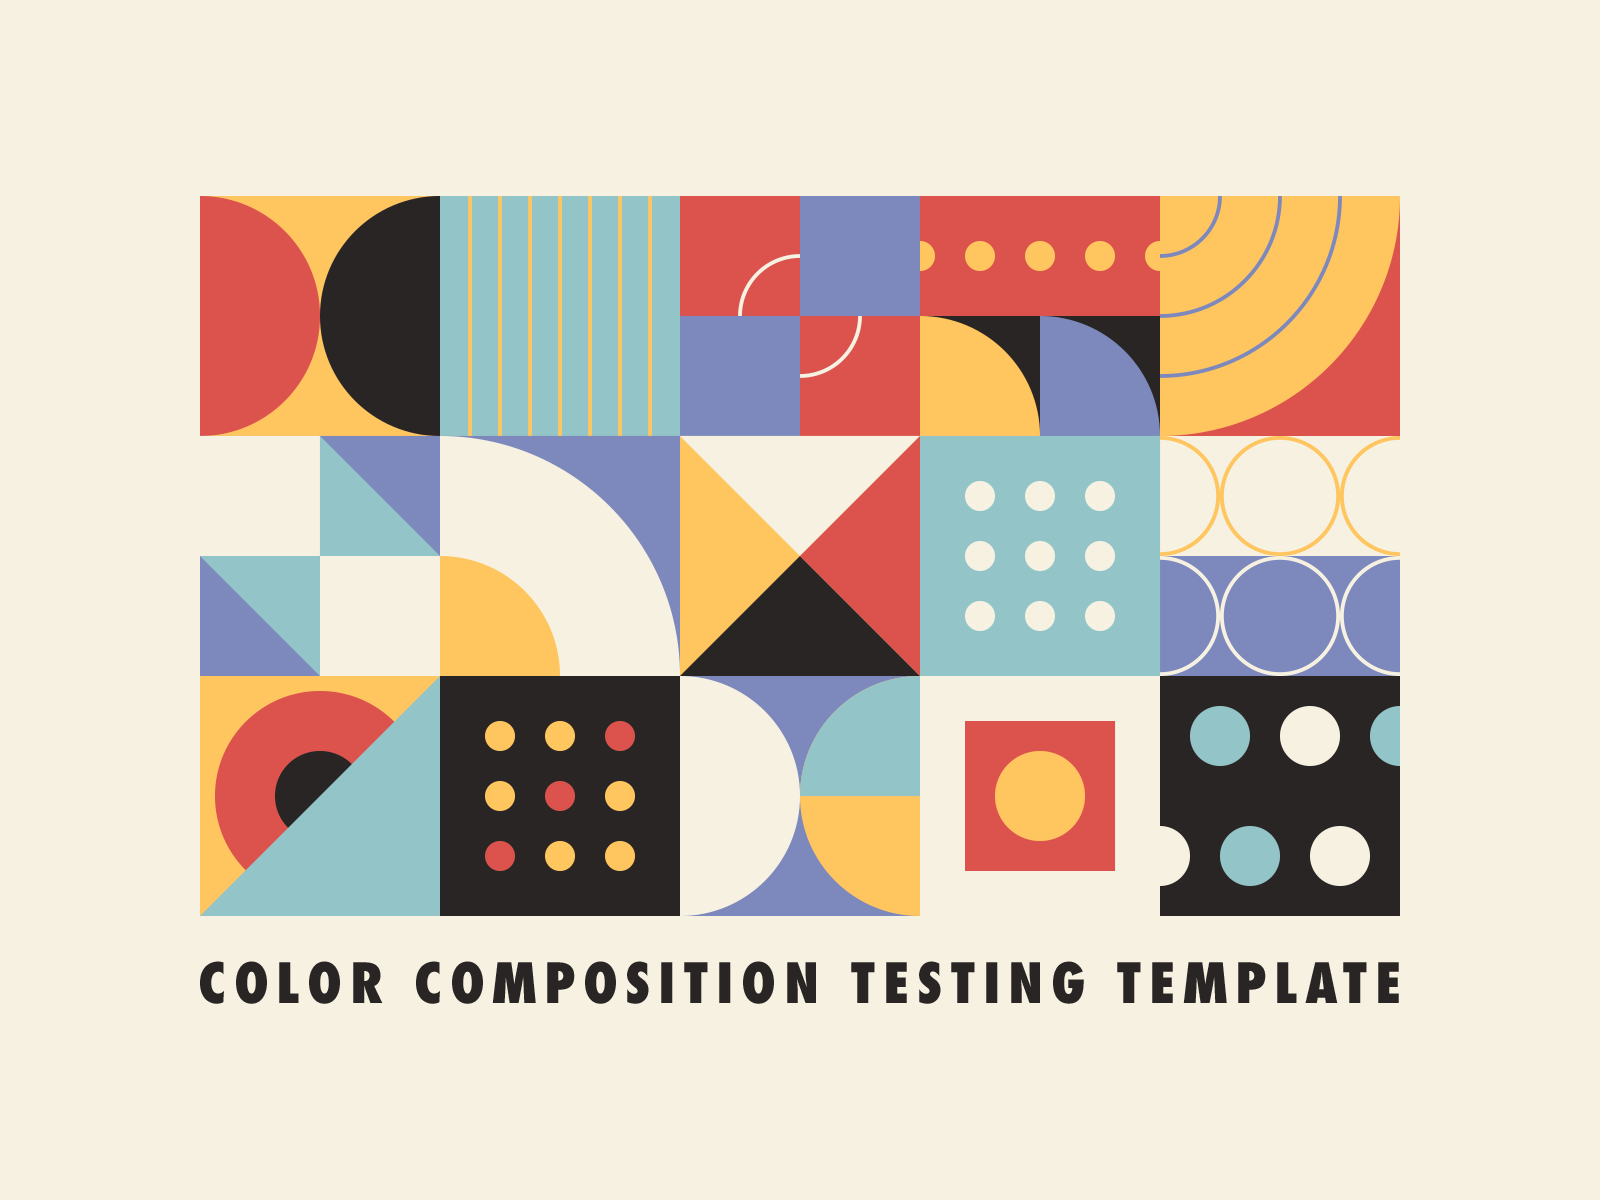 Color Composition Testing Templateby Justin Mezzell